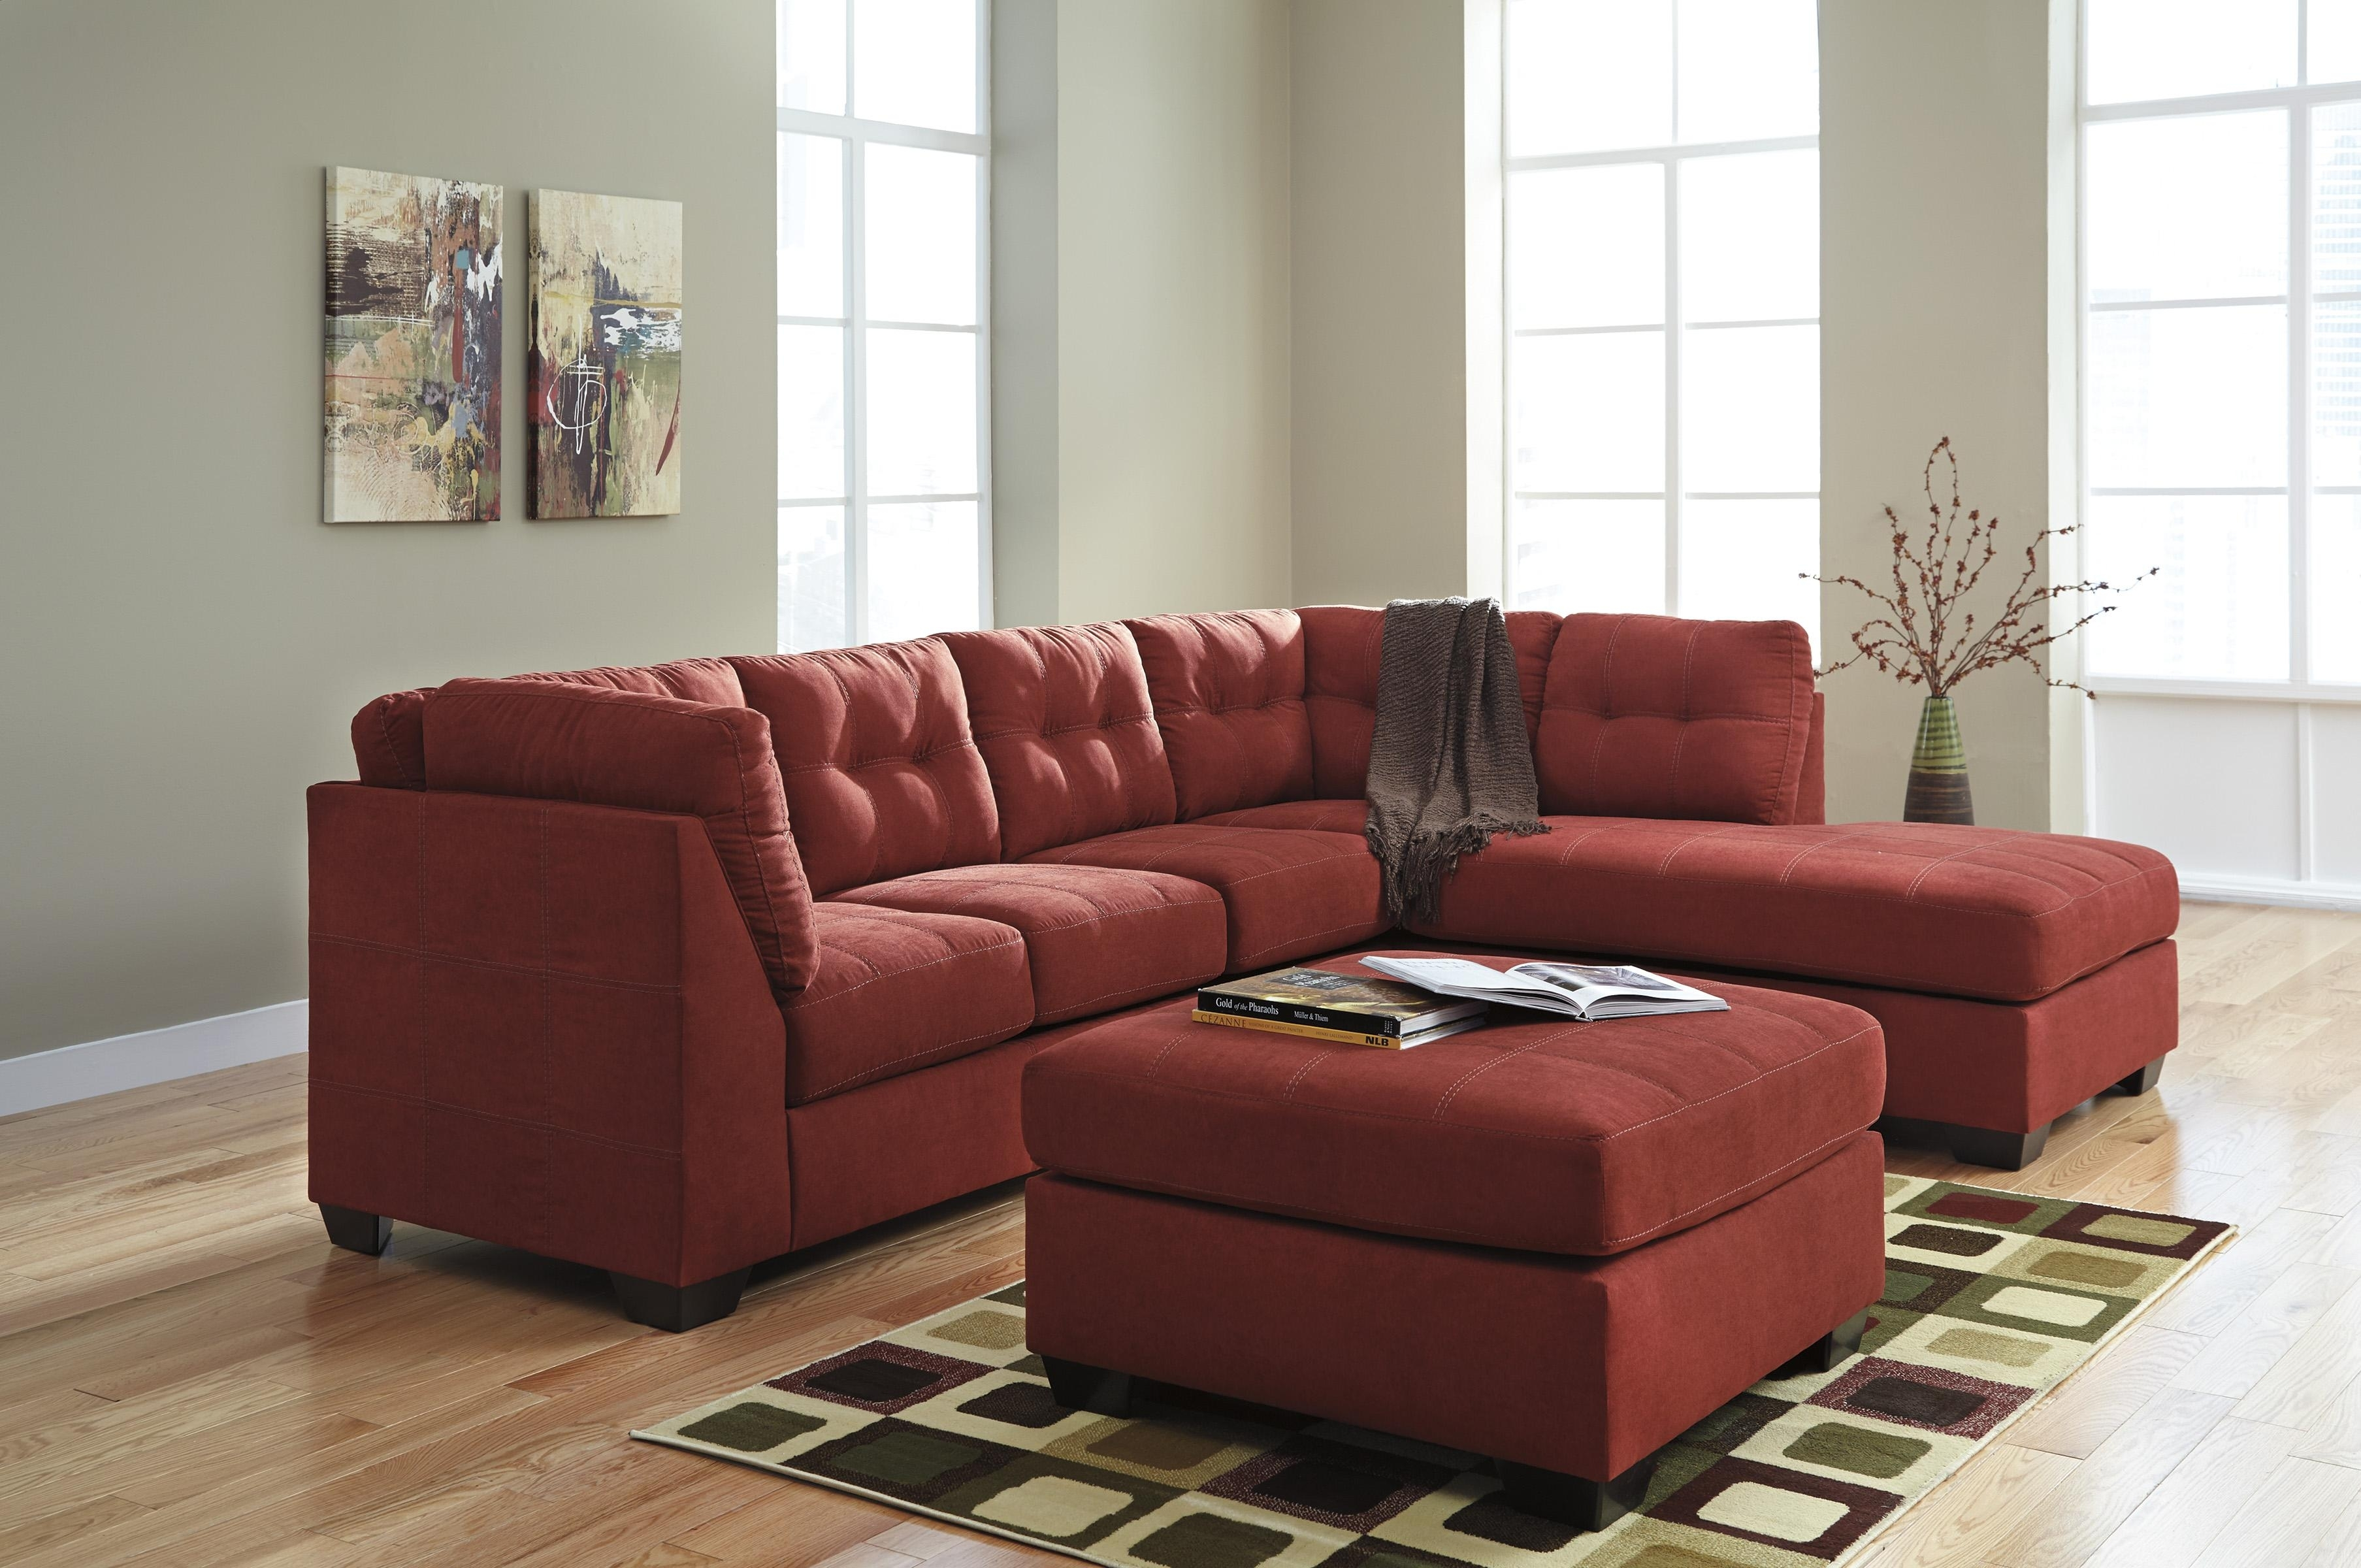 Interesting Sofa Reclining Sectional With Winsome Sleeper Cou For Intended For Evan 2 Piece Sectionals With Raf Chaise (Image 21 of 25)